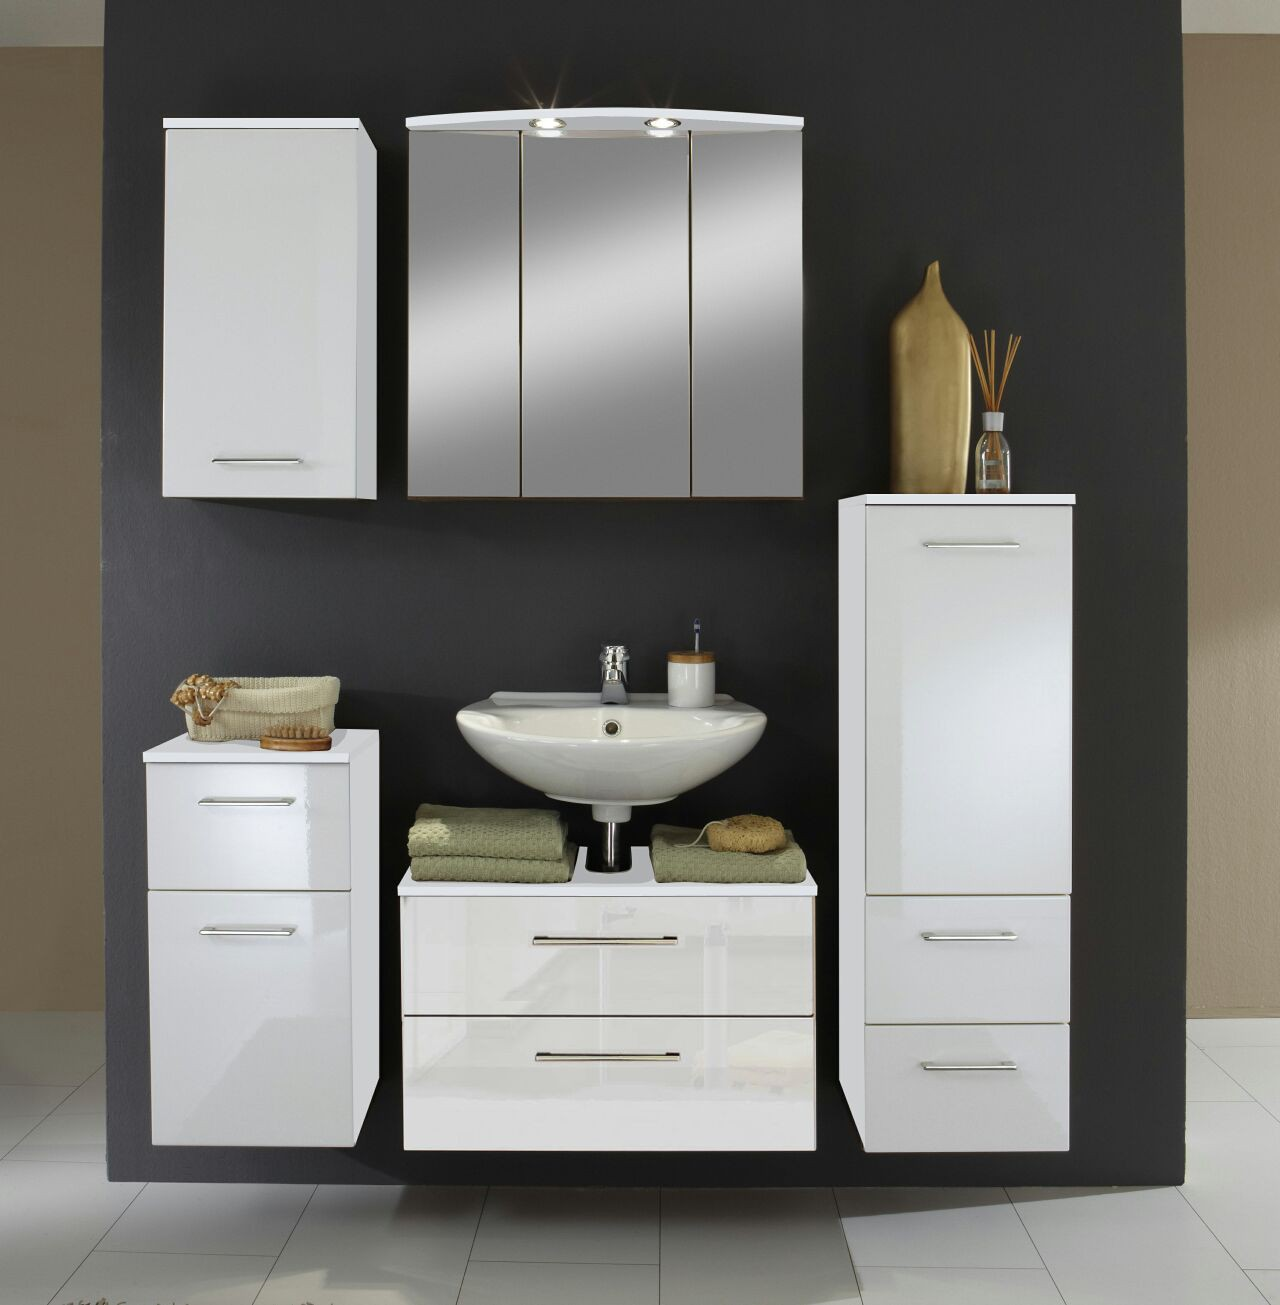 badm bel set next 5 teilig 140 cm breit hochglanz wei bad badm belsets. Black Bedroom Furniture Sets. Home Design Ideas